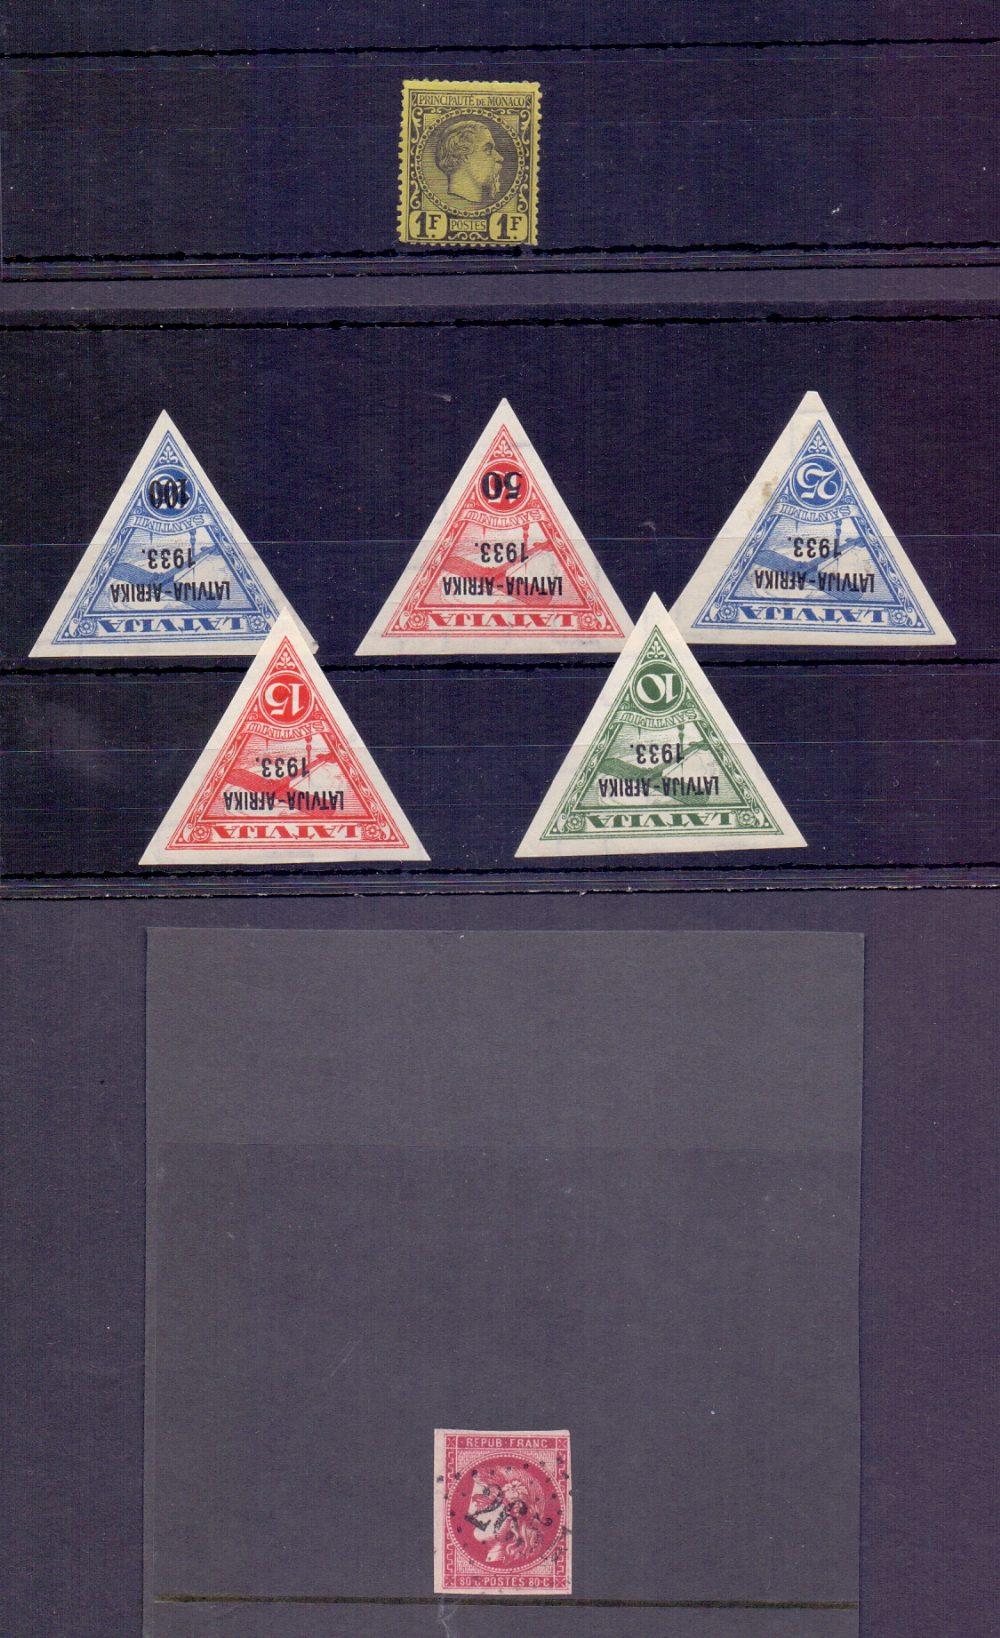 Lot 3 - WORLD STAMPS : Batch of Foreign stamps previously individually offered in our auction,